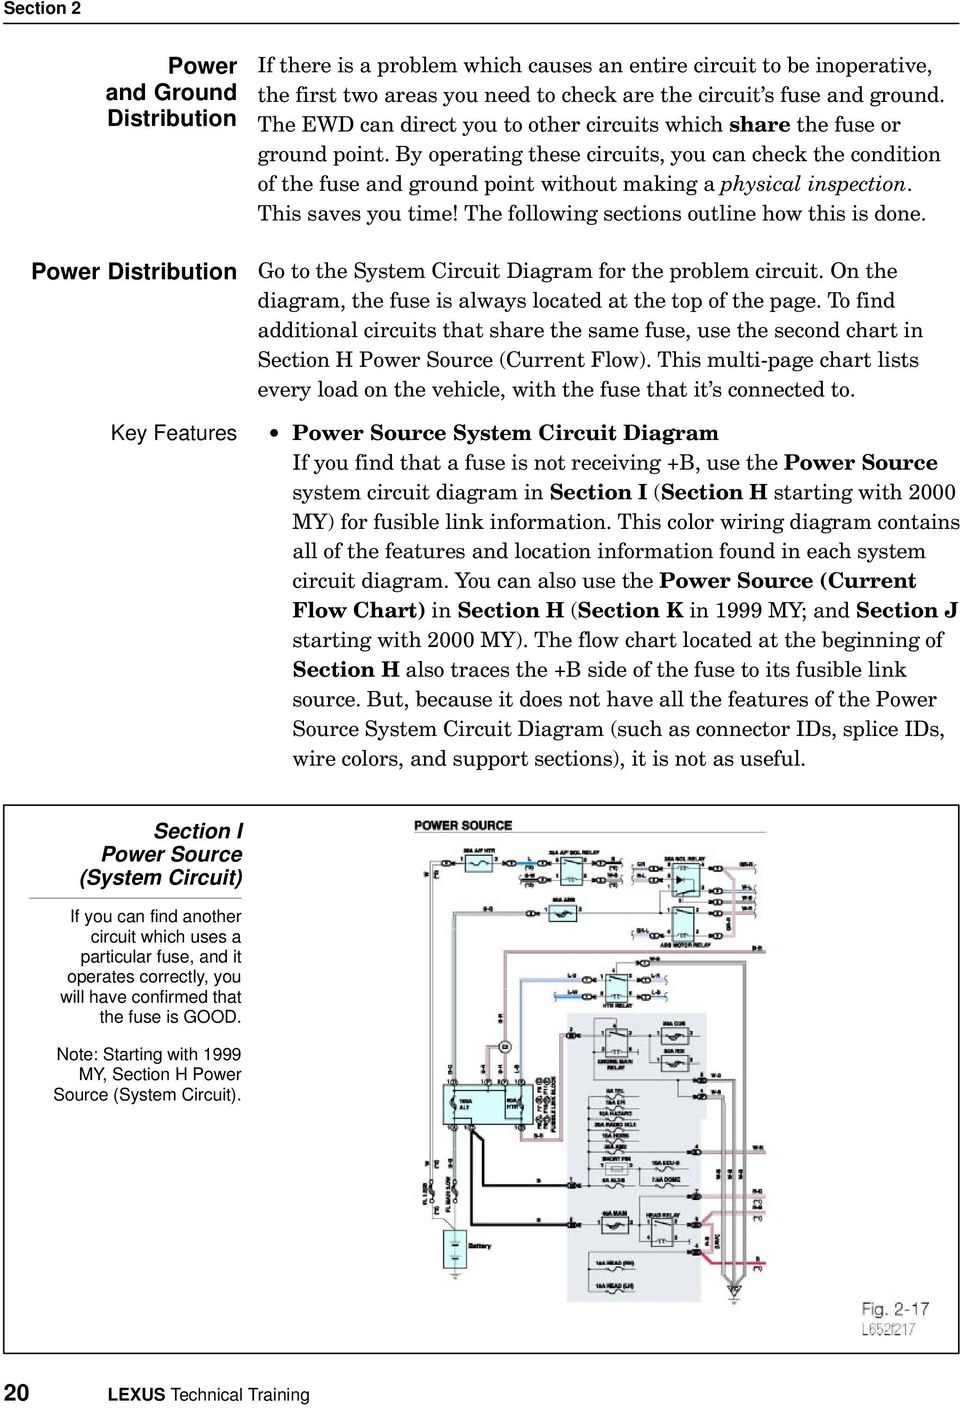 Using The Electrical Wiring Diagram Pdf Plc Schematic Symbols Chart Get Free Image About By Operating These Circuits You Can Check Condition Of Fuse And Ground Point 21